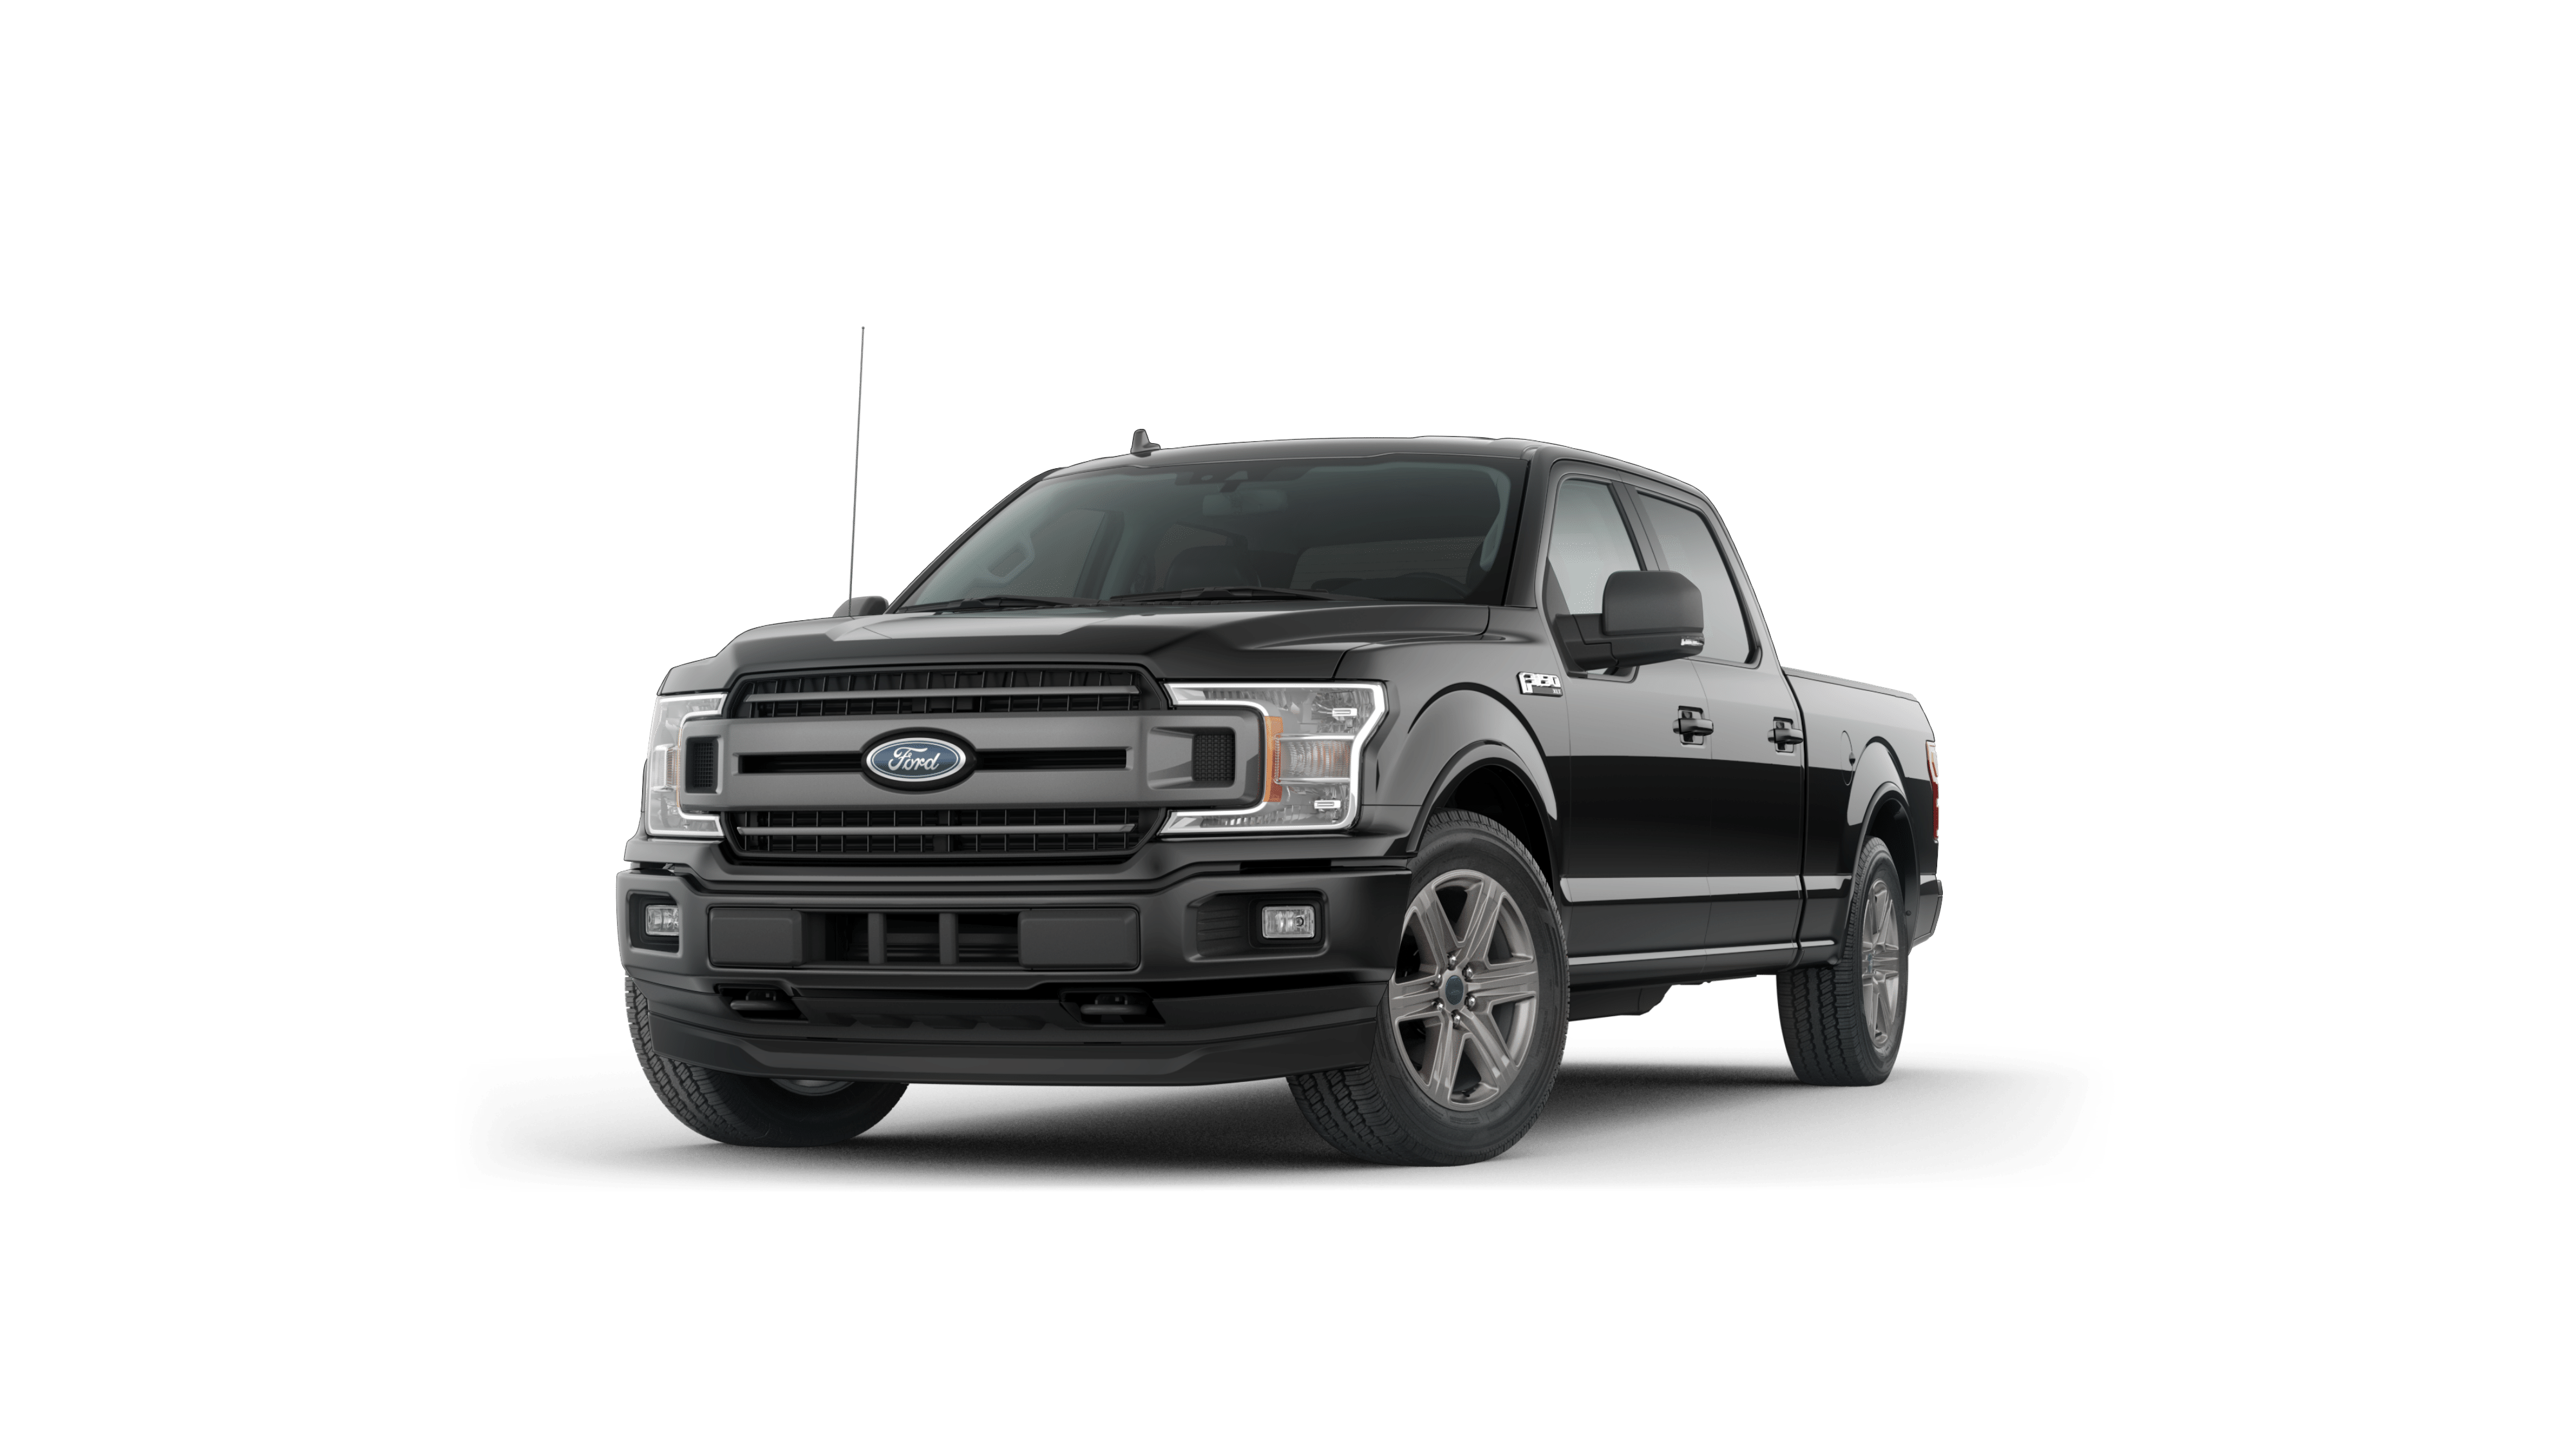 2019 ford f 150 for sale in natrona heights 1ftfw1e41kfa32644 cochran ford. Black Bedroom Furniture Sets. Home Design Ideas